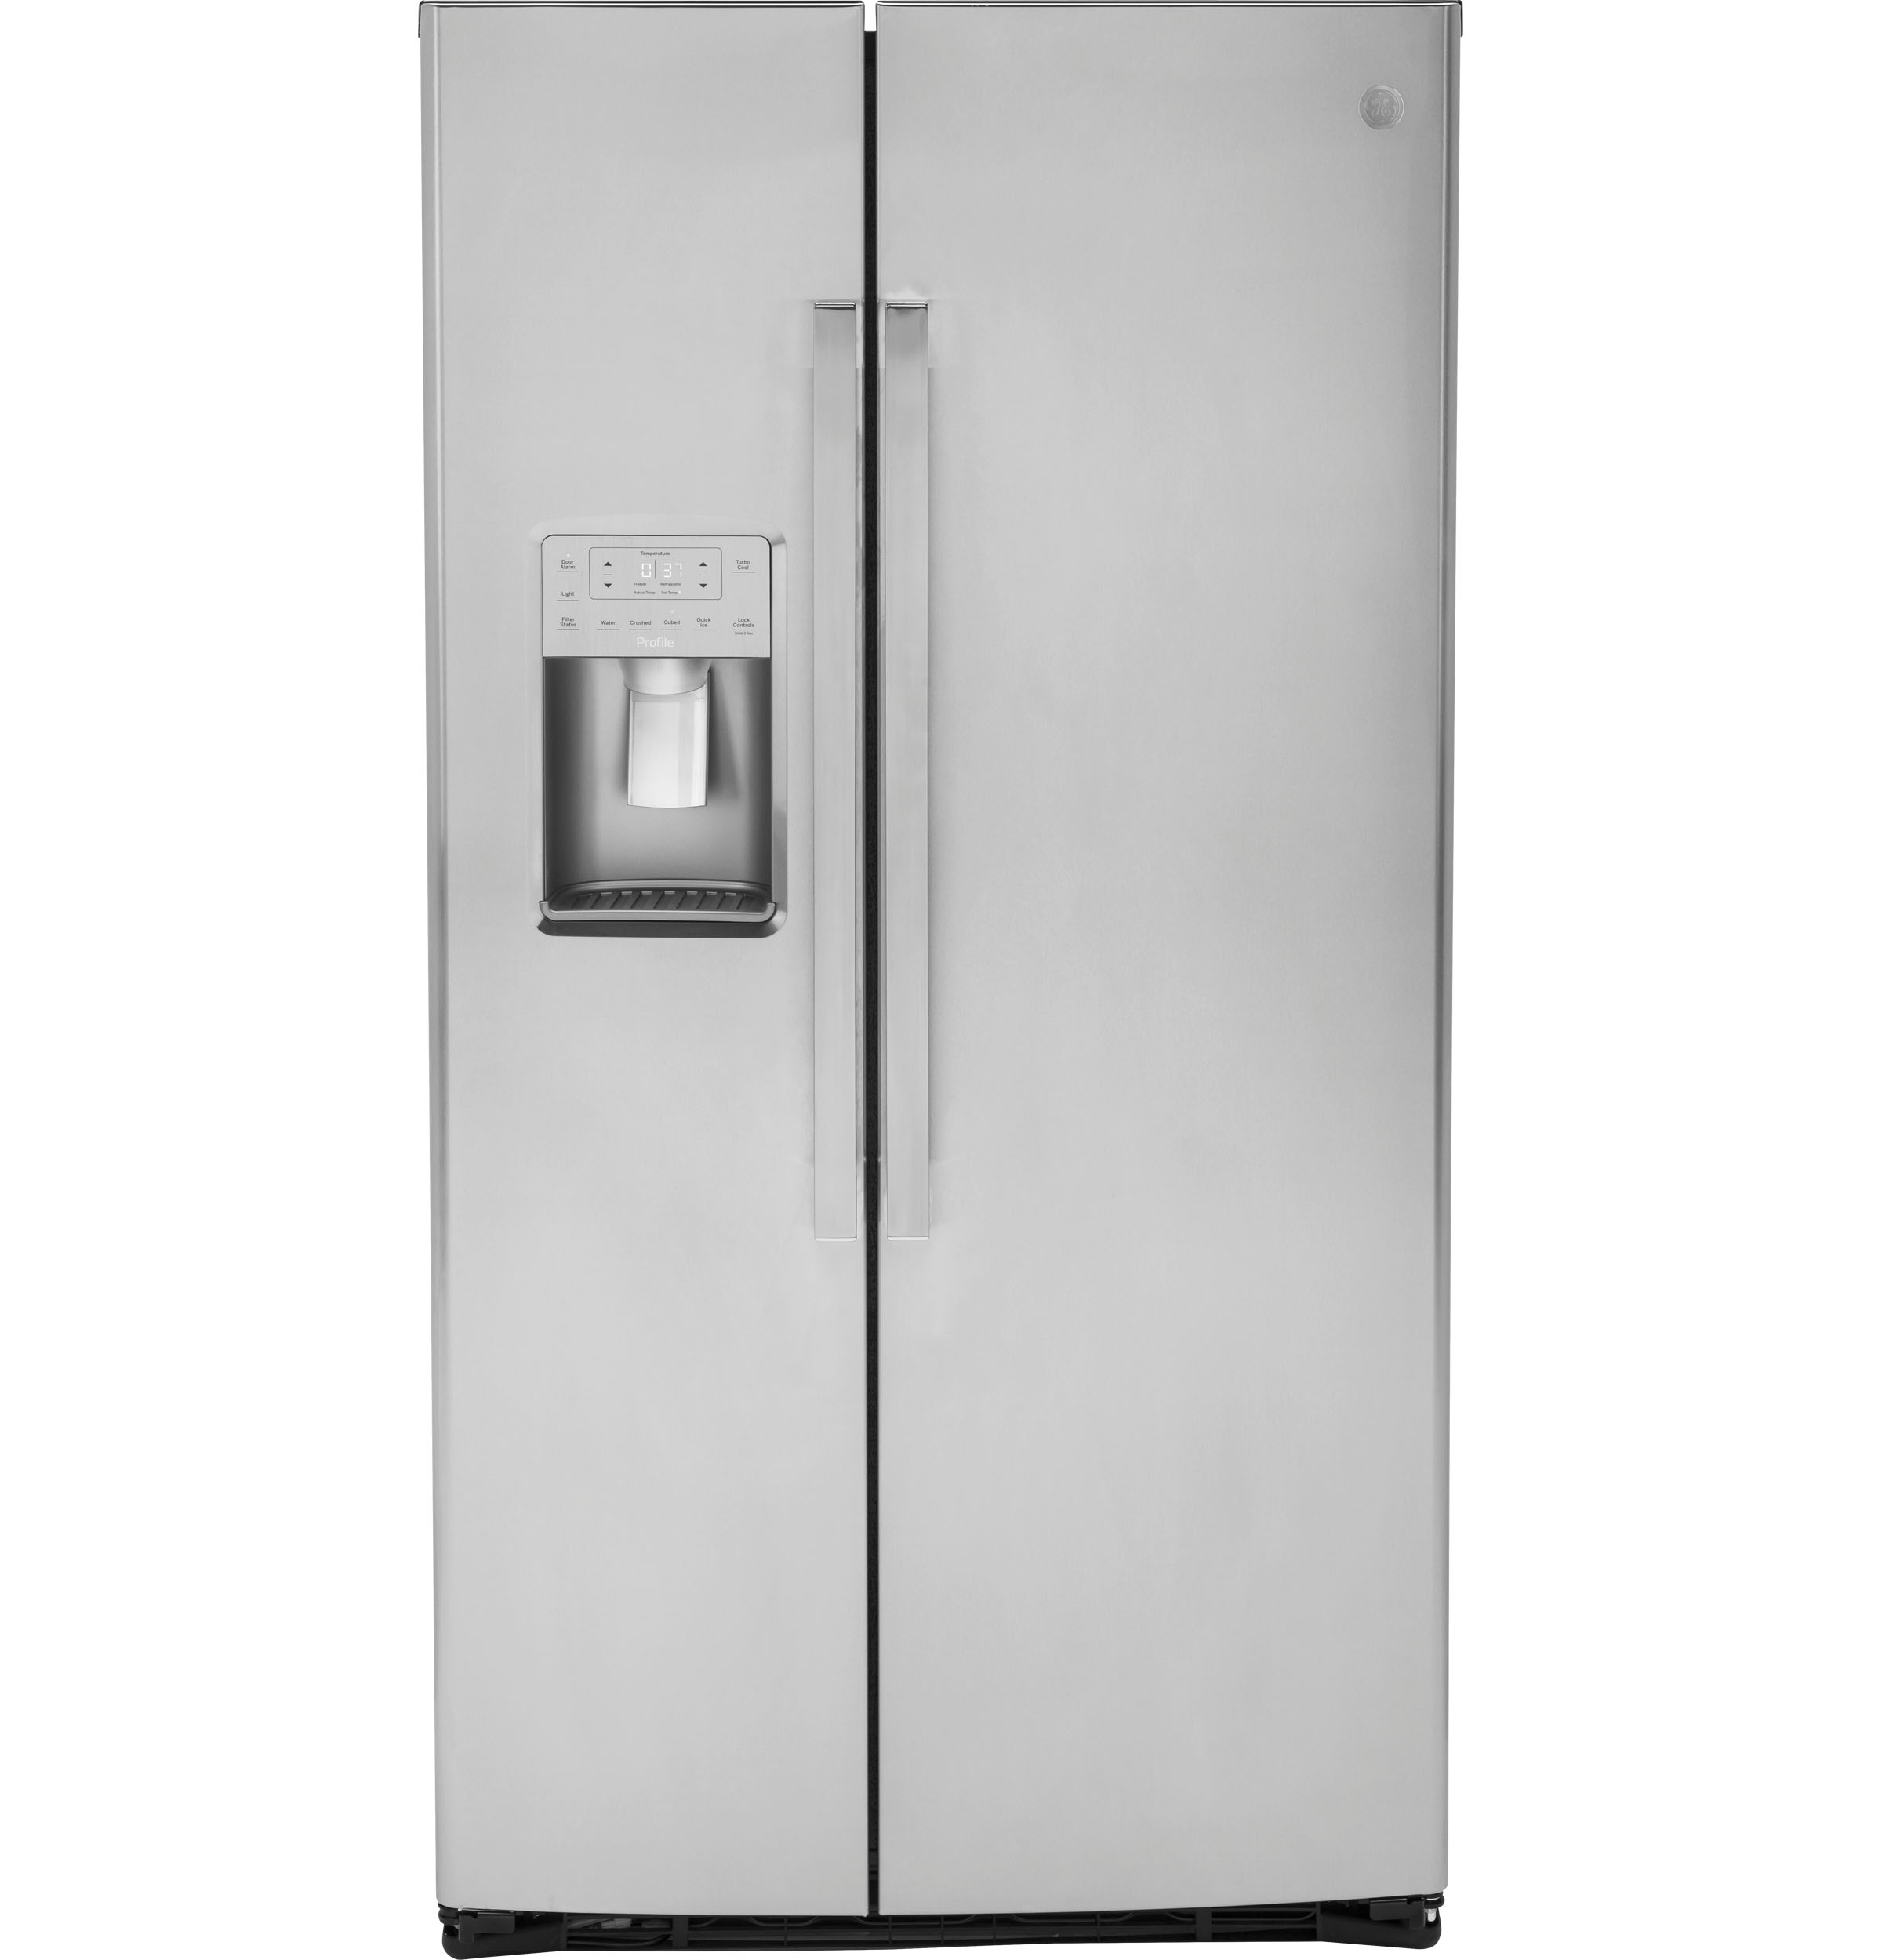 GE Profile GE Profile™ Series 21.9 Cu. Ft. Counter-Depth Side-By-Side Refrigerator